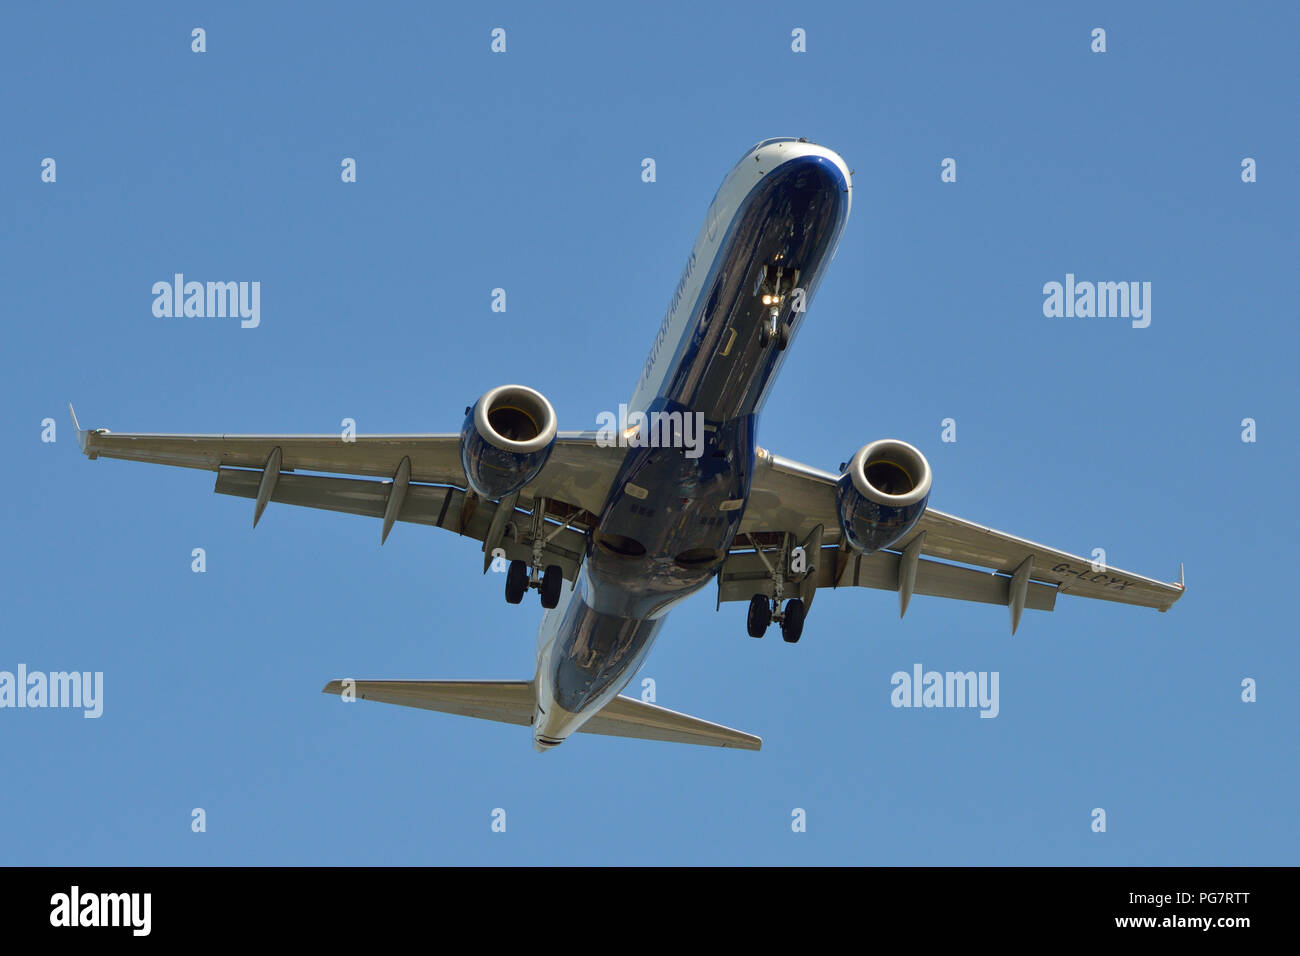 A British Airways CityFlyer Embraer 190 comes in to land at London City Airport in London's Docklands - Stock Image